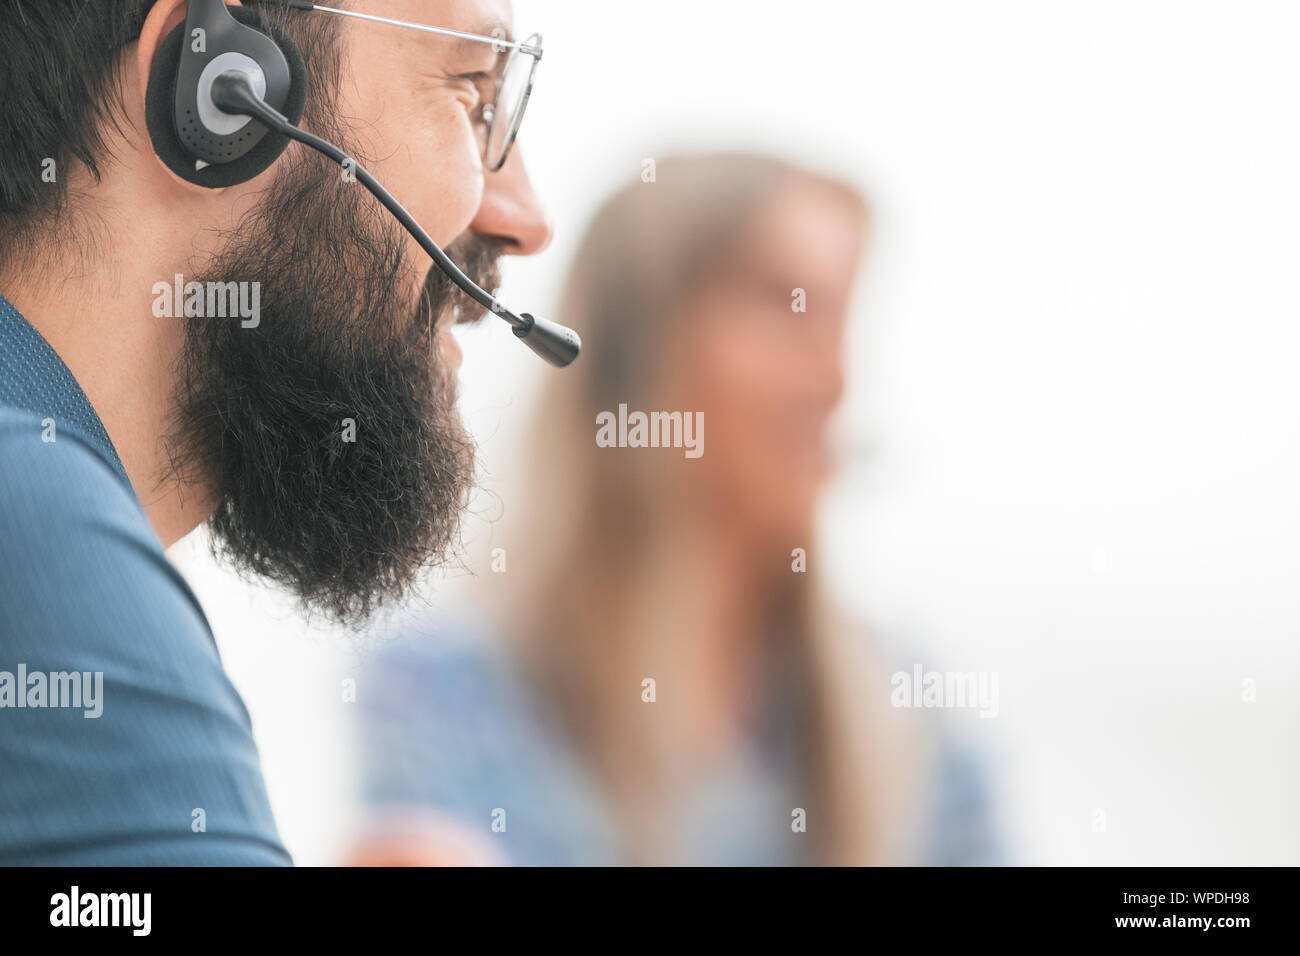 close up. smiling man in headset on blurred background Stock Photo